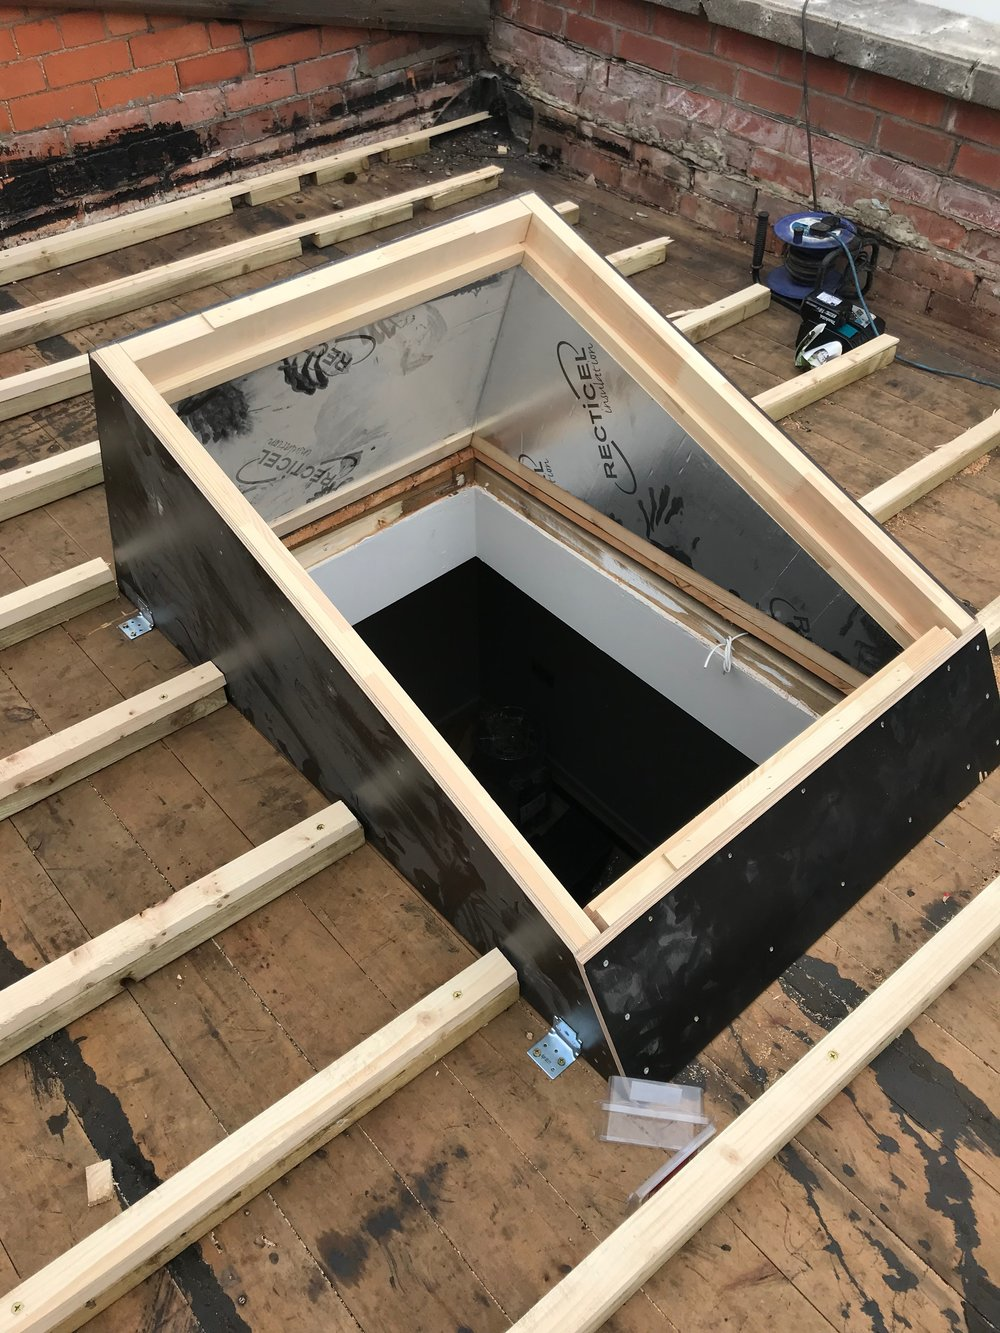 A perfect fit - We then plasterboarded the inside of the aperture to make sure everything was aligned correctly to allow maximum sunlight into an otherwise quite dark room.